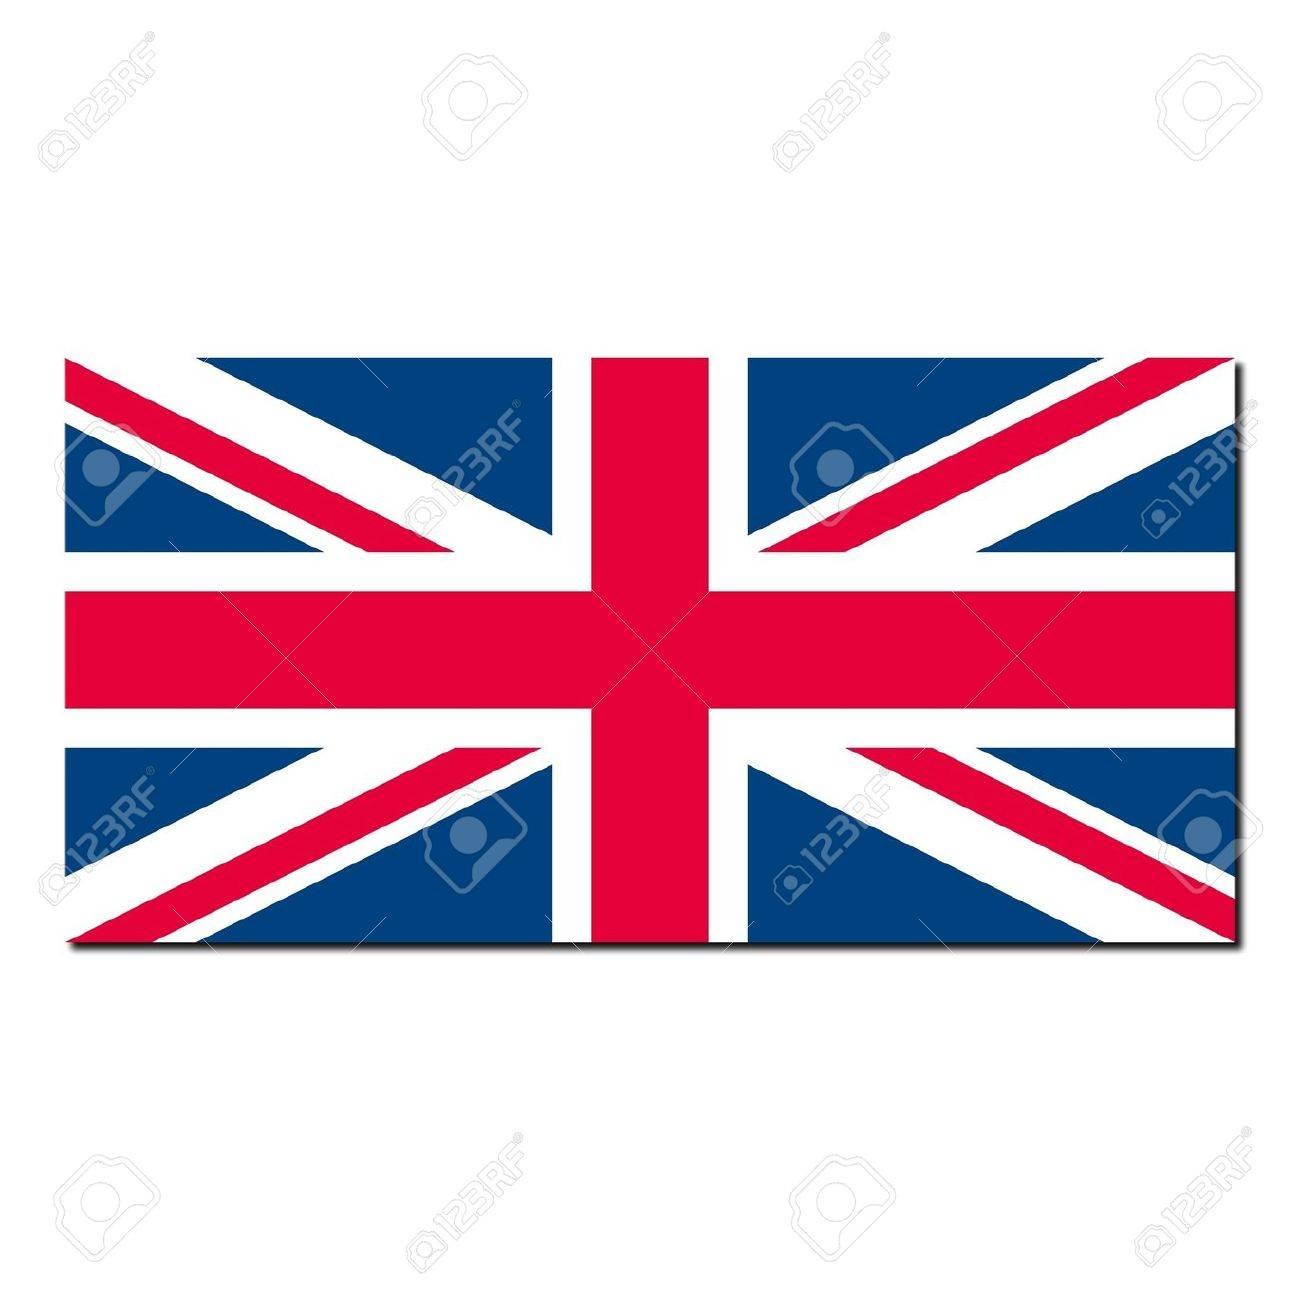 uk flag union jack proper normalised ratio 2 1 and colours